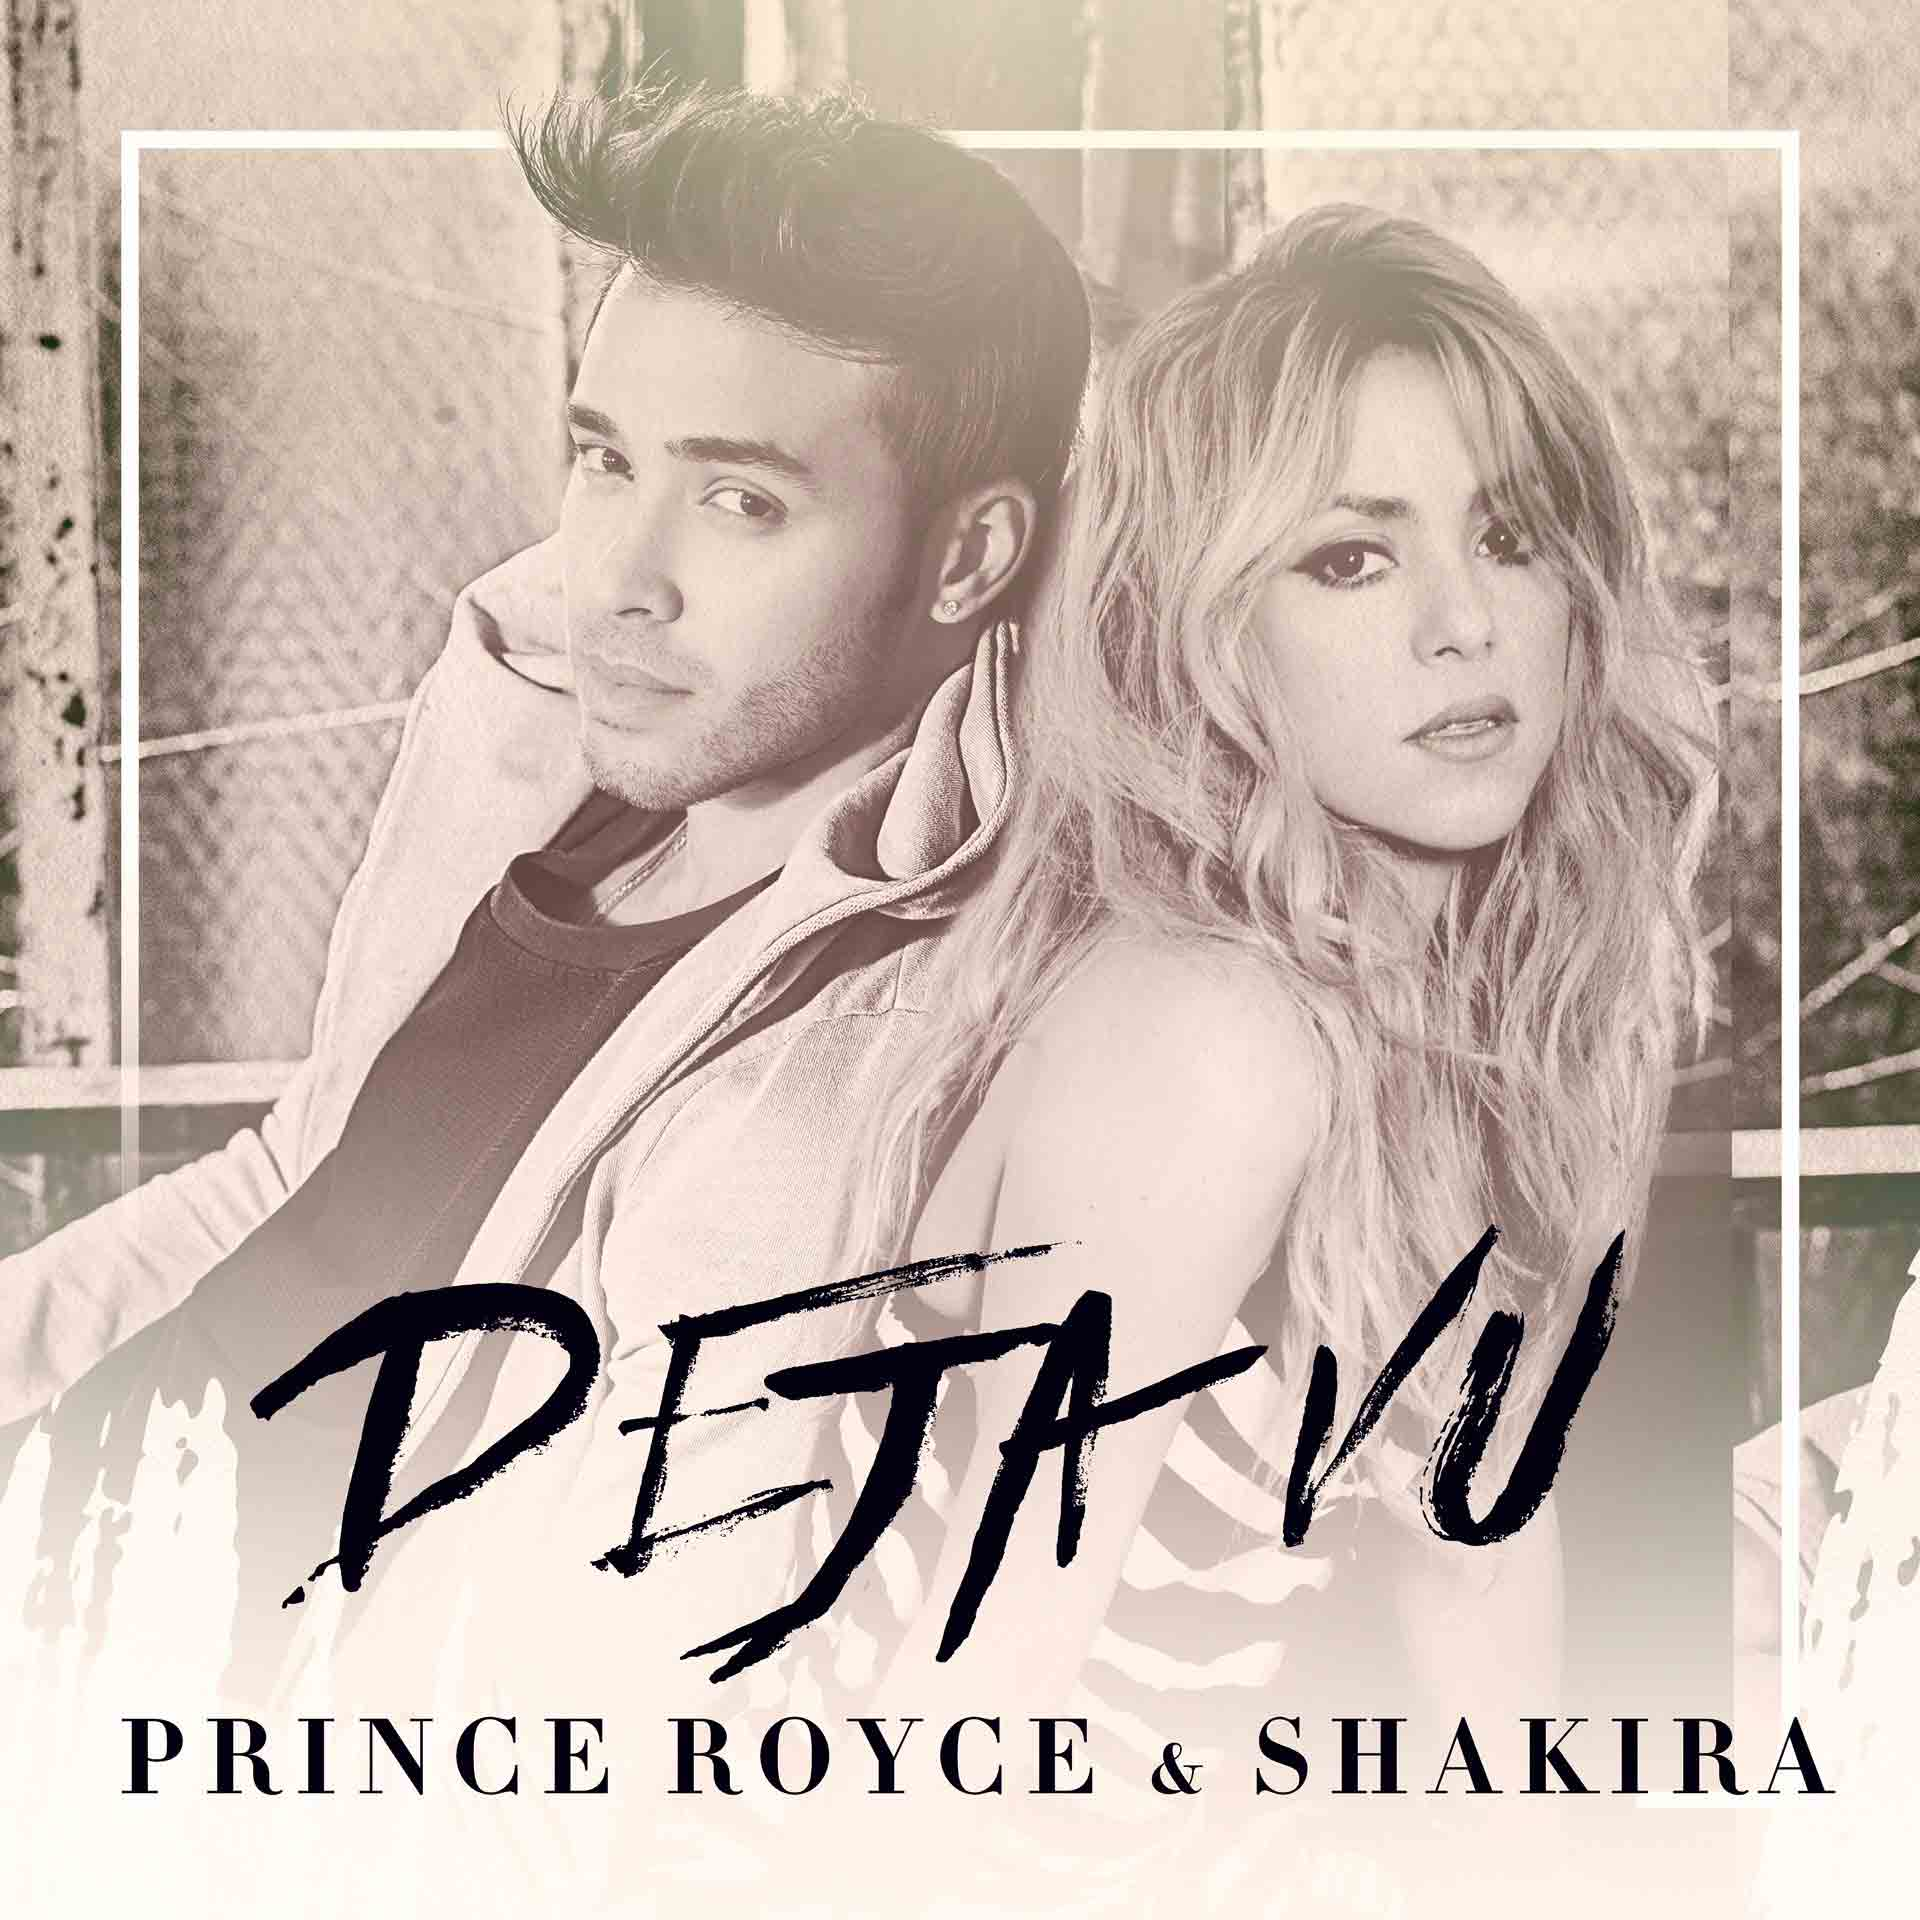 Prince Royce & Shakira - Déjà Vu (Cover Single BD) JustMusic.fr